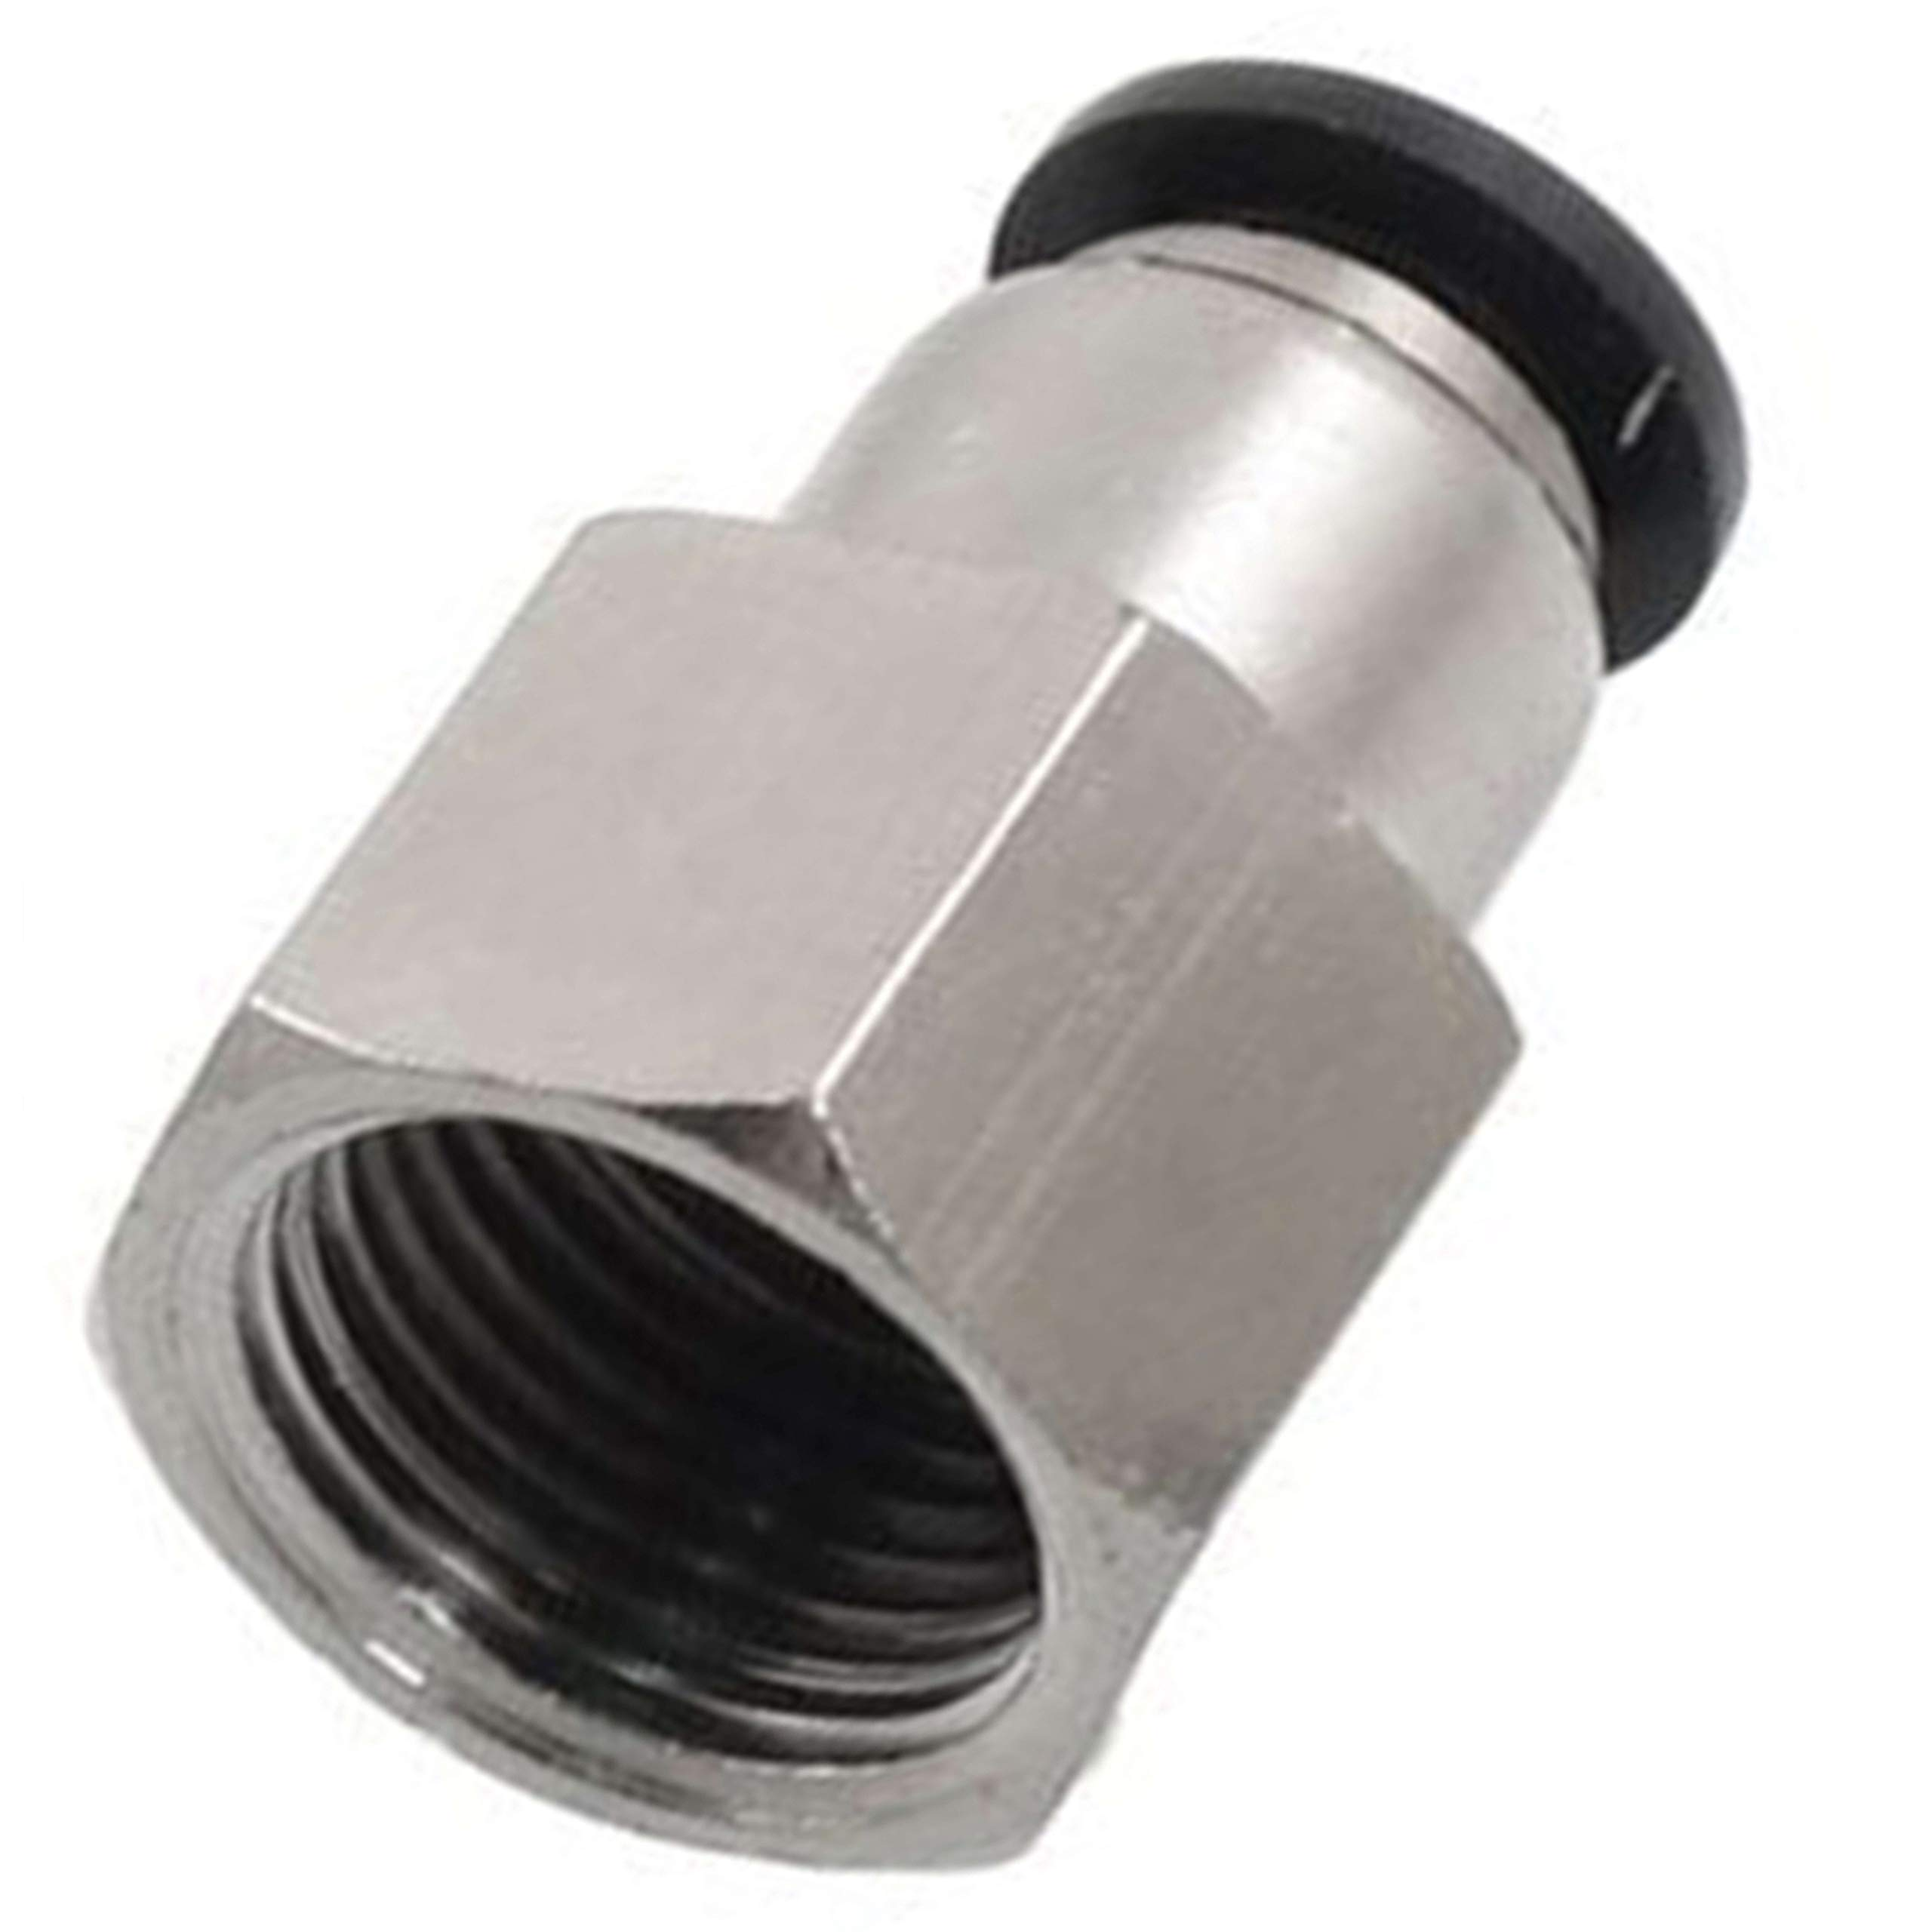 Utah Pneumatic Push to Connect Air Fittings 1/4'' Od 1/8'' Npt Female Nylon & Nickel-Plated Brass Pneumatic Fittings Air Line Fittings Straight Union Fitting PTC Pneumatic Connectors (Pack of 10 Pcf)